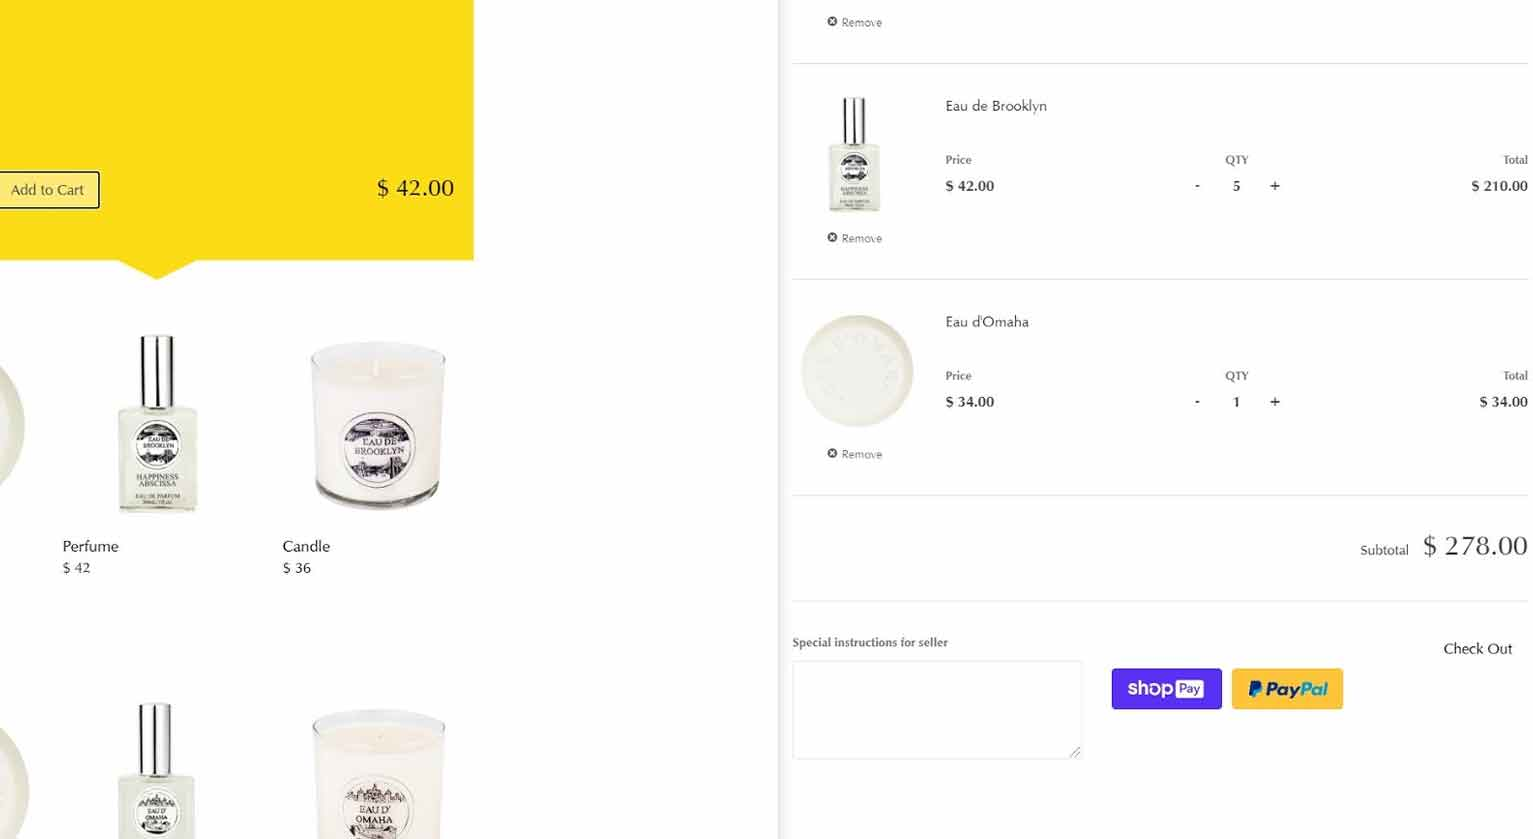 """Upon clicking the """"Add to Cart"""" button, consumers of Happiness Abscissa can complete checkout through the right panel and pay through Paypal or Shop Pay."""